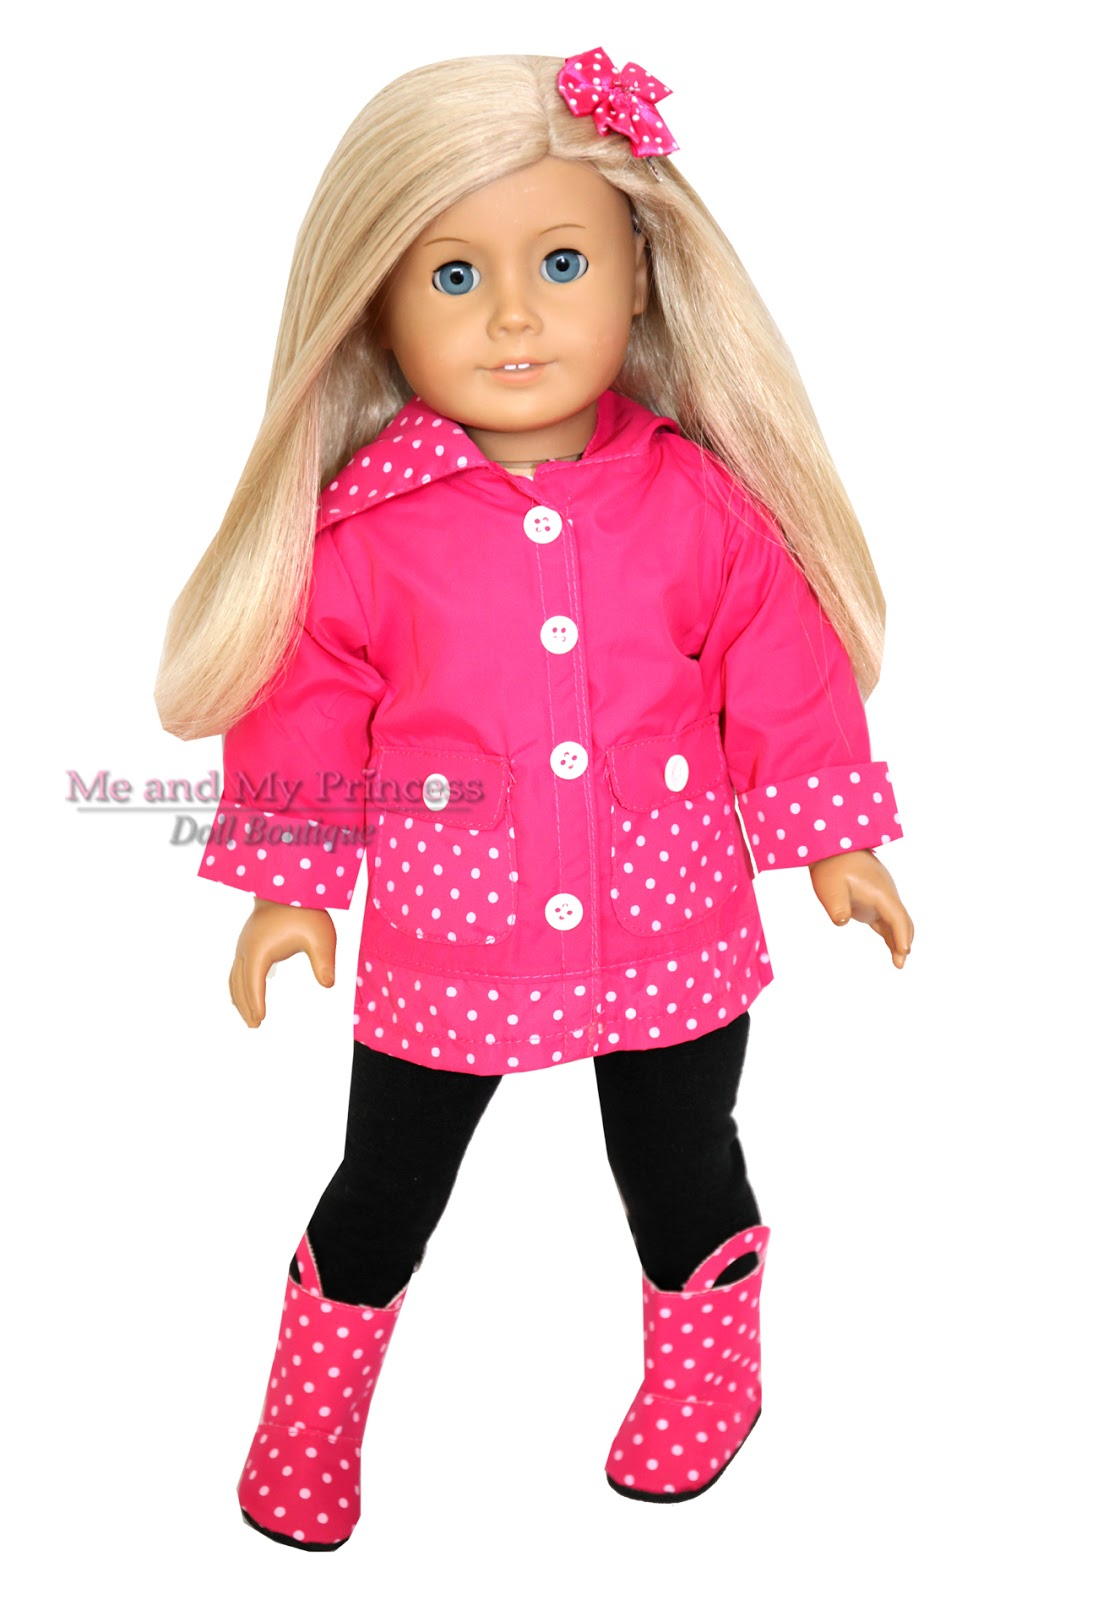 Doll Clothes Patterns By Valspierssews Review Of American: Me And My Princess Doll Clothes Boutique